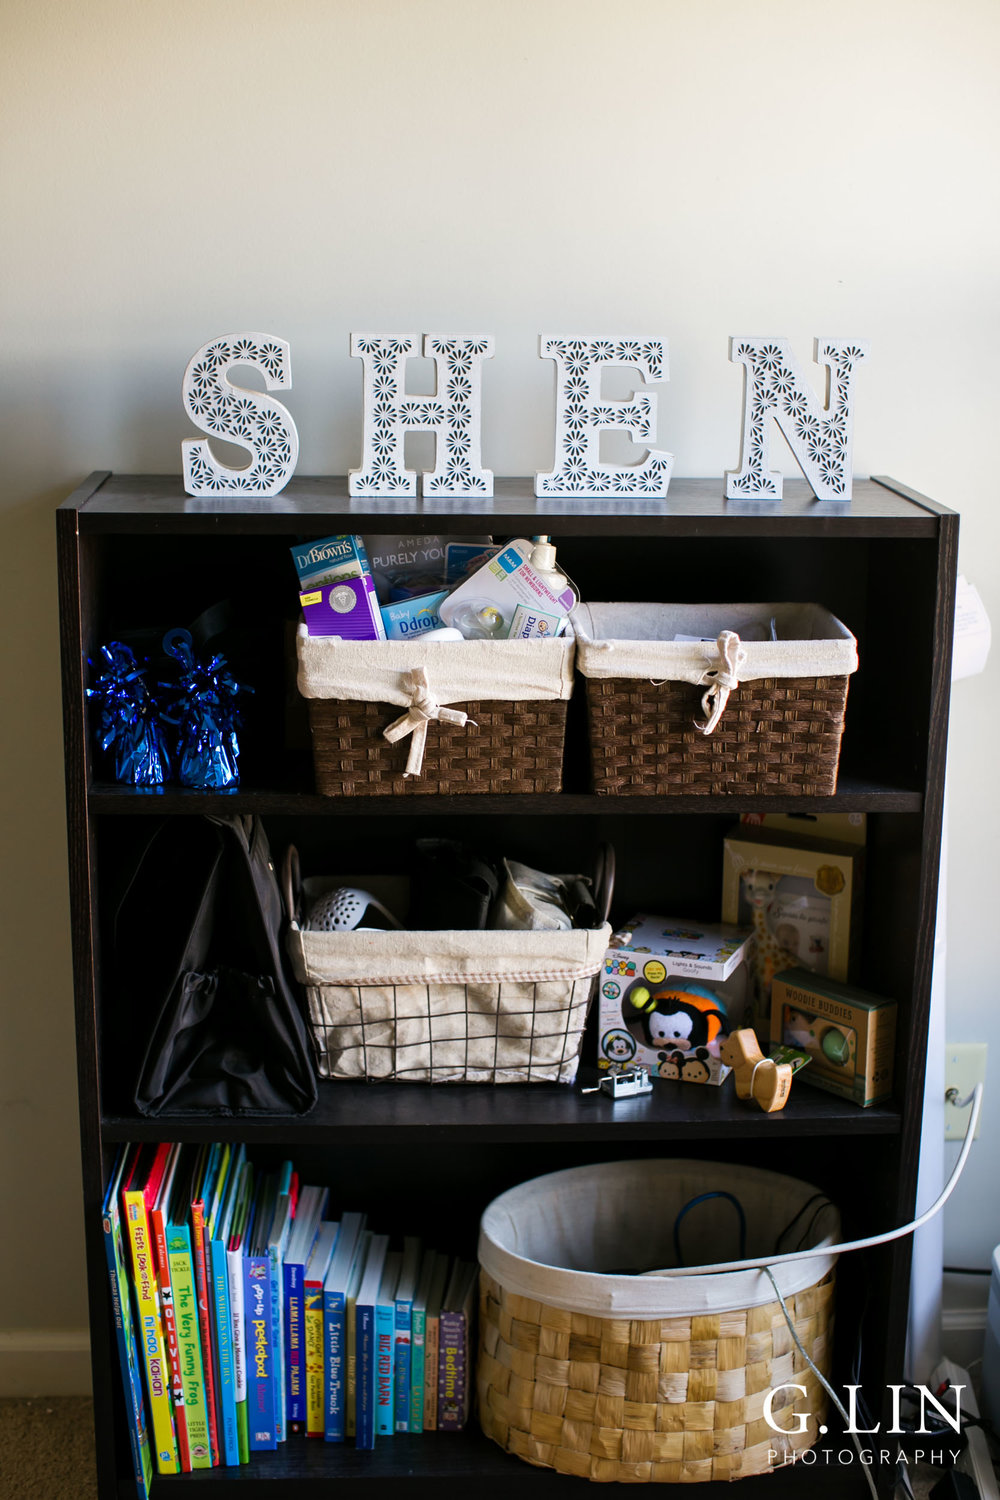 Durham Maternity Photography | G. Lin Photography | Images of baby items on shelf